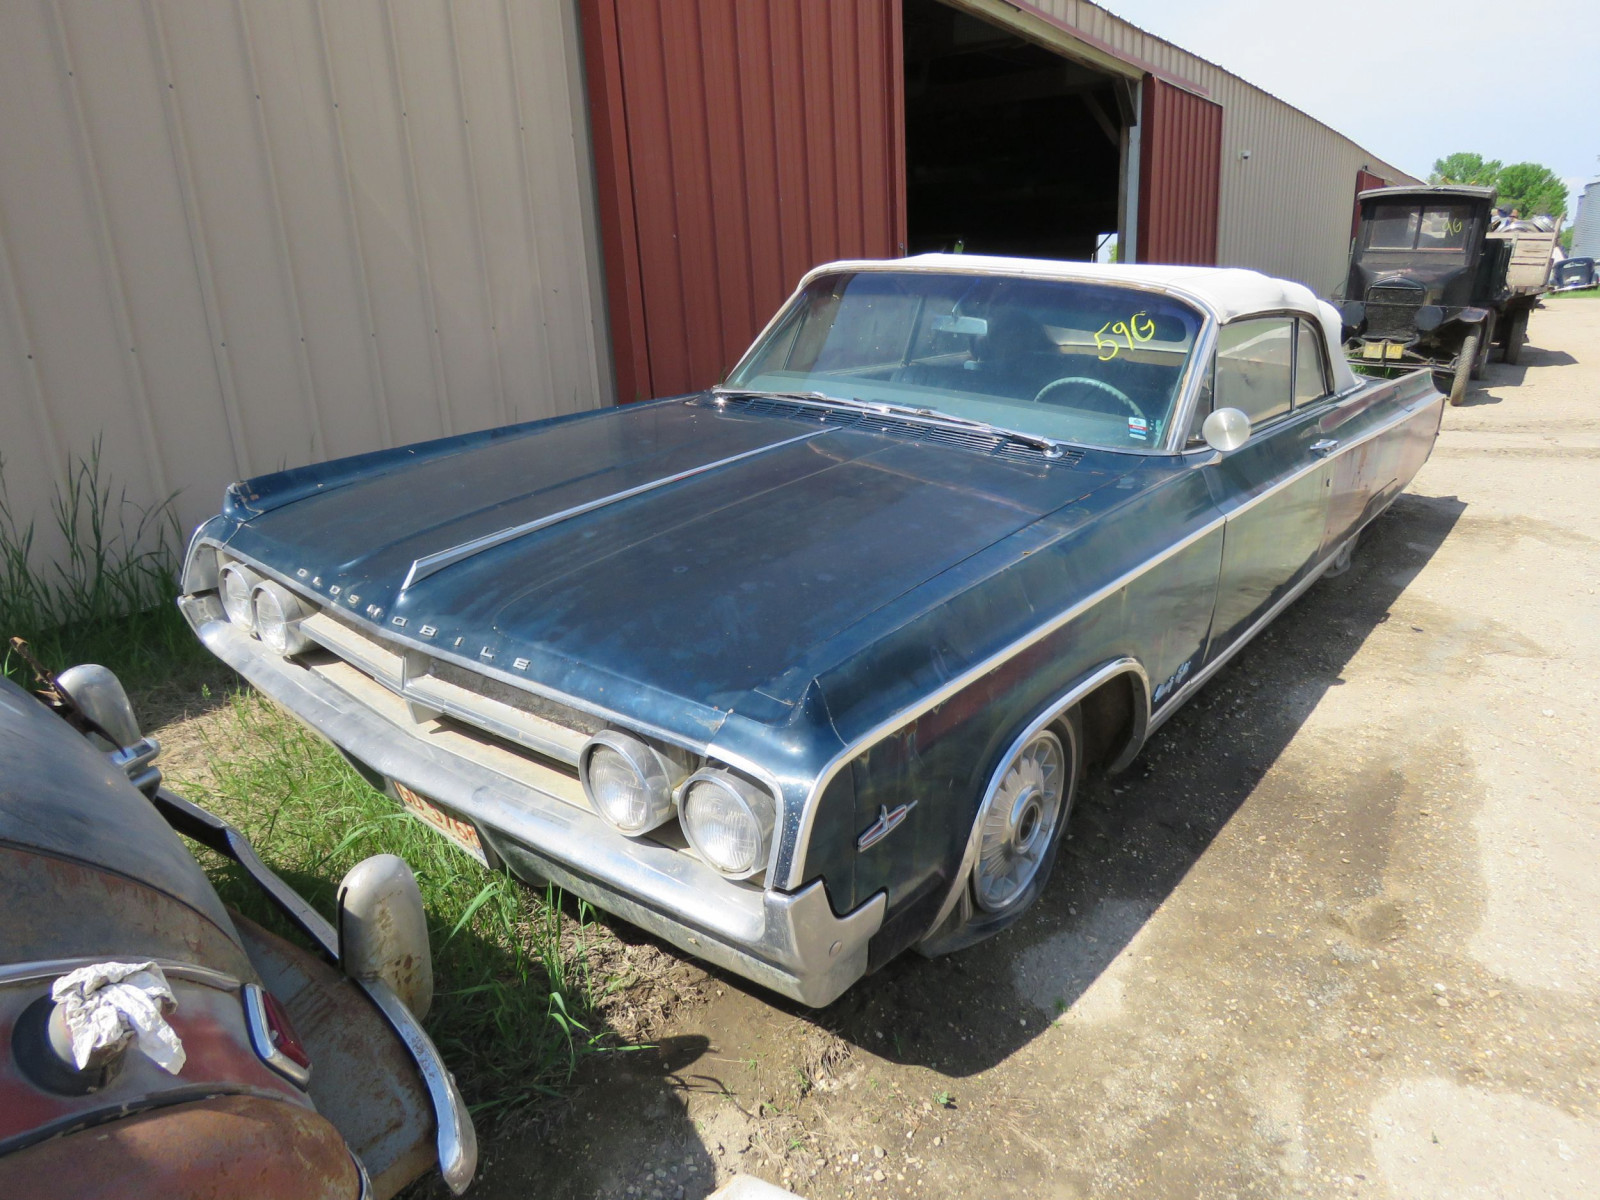 1964 Oldsmobile 98 Convertible 884M302945 - Image 1